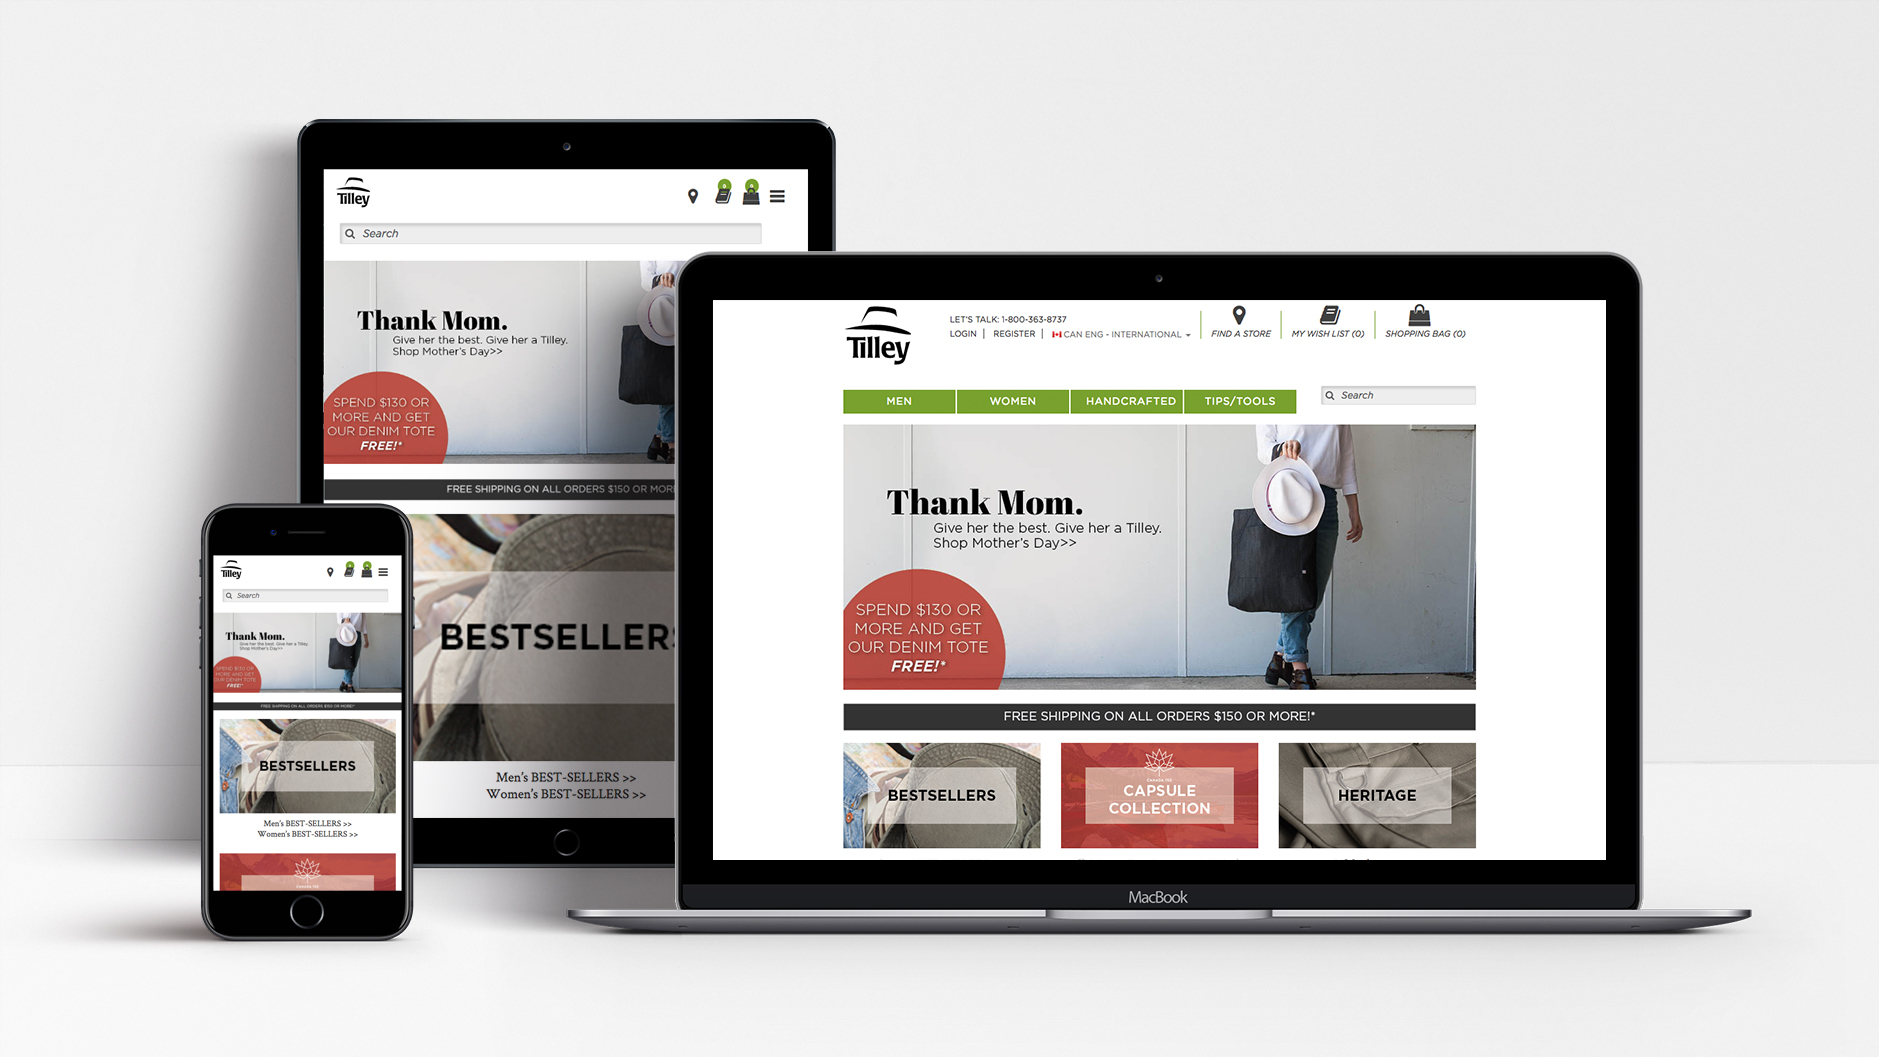 Tilley | Tilley Endurables – Website | E-Commerce, Magento, Mobile, Website Design & Development